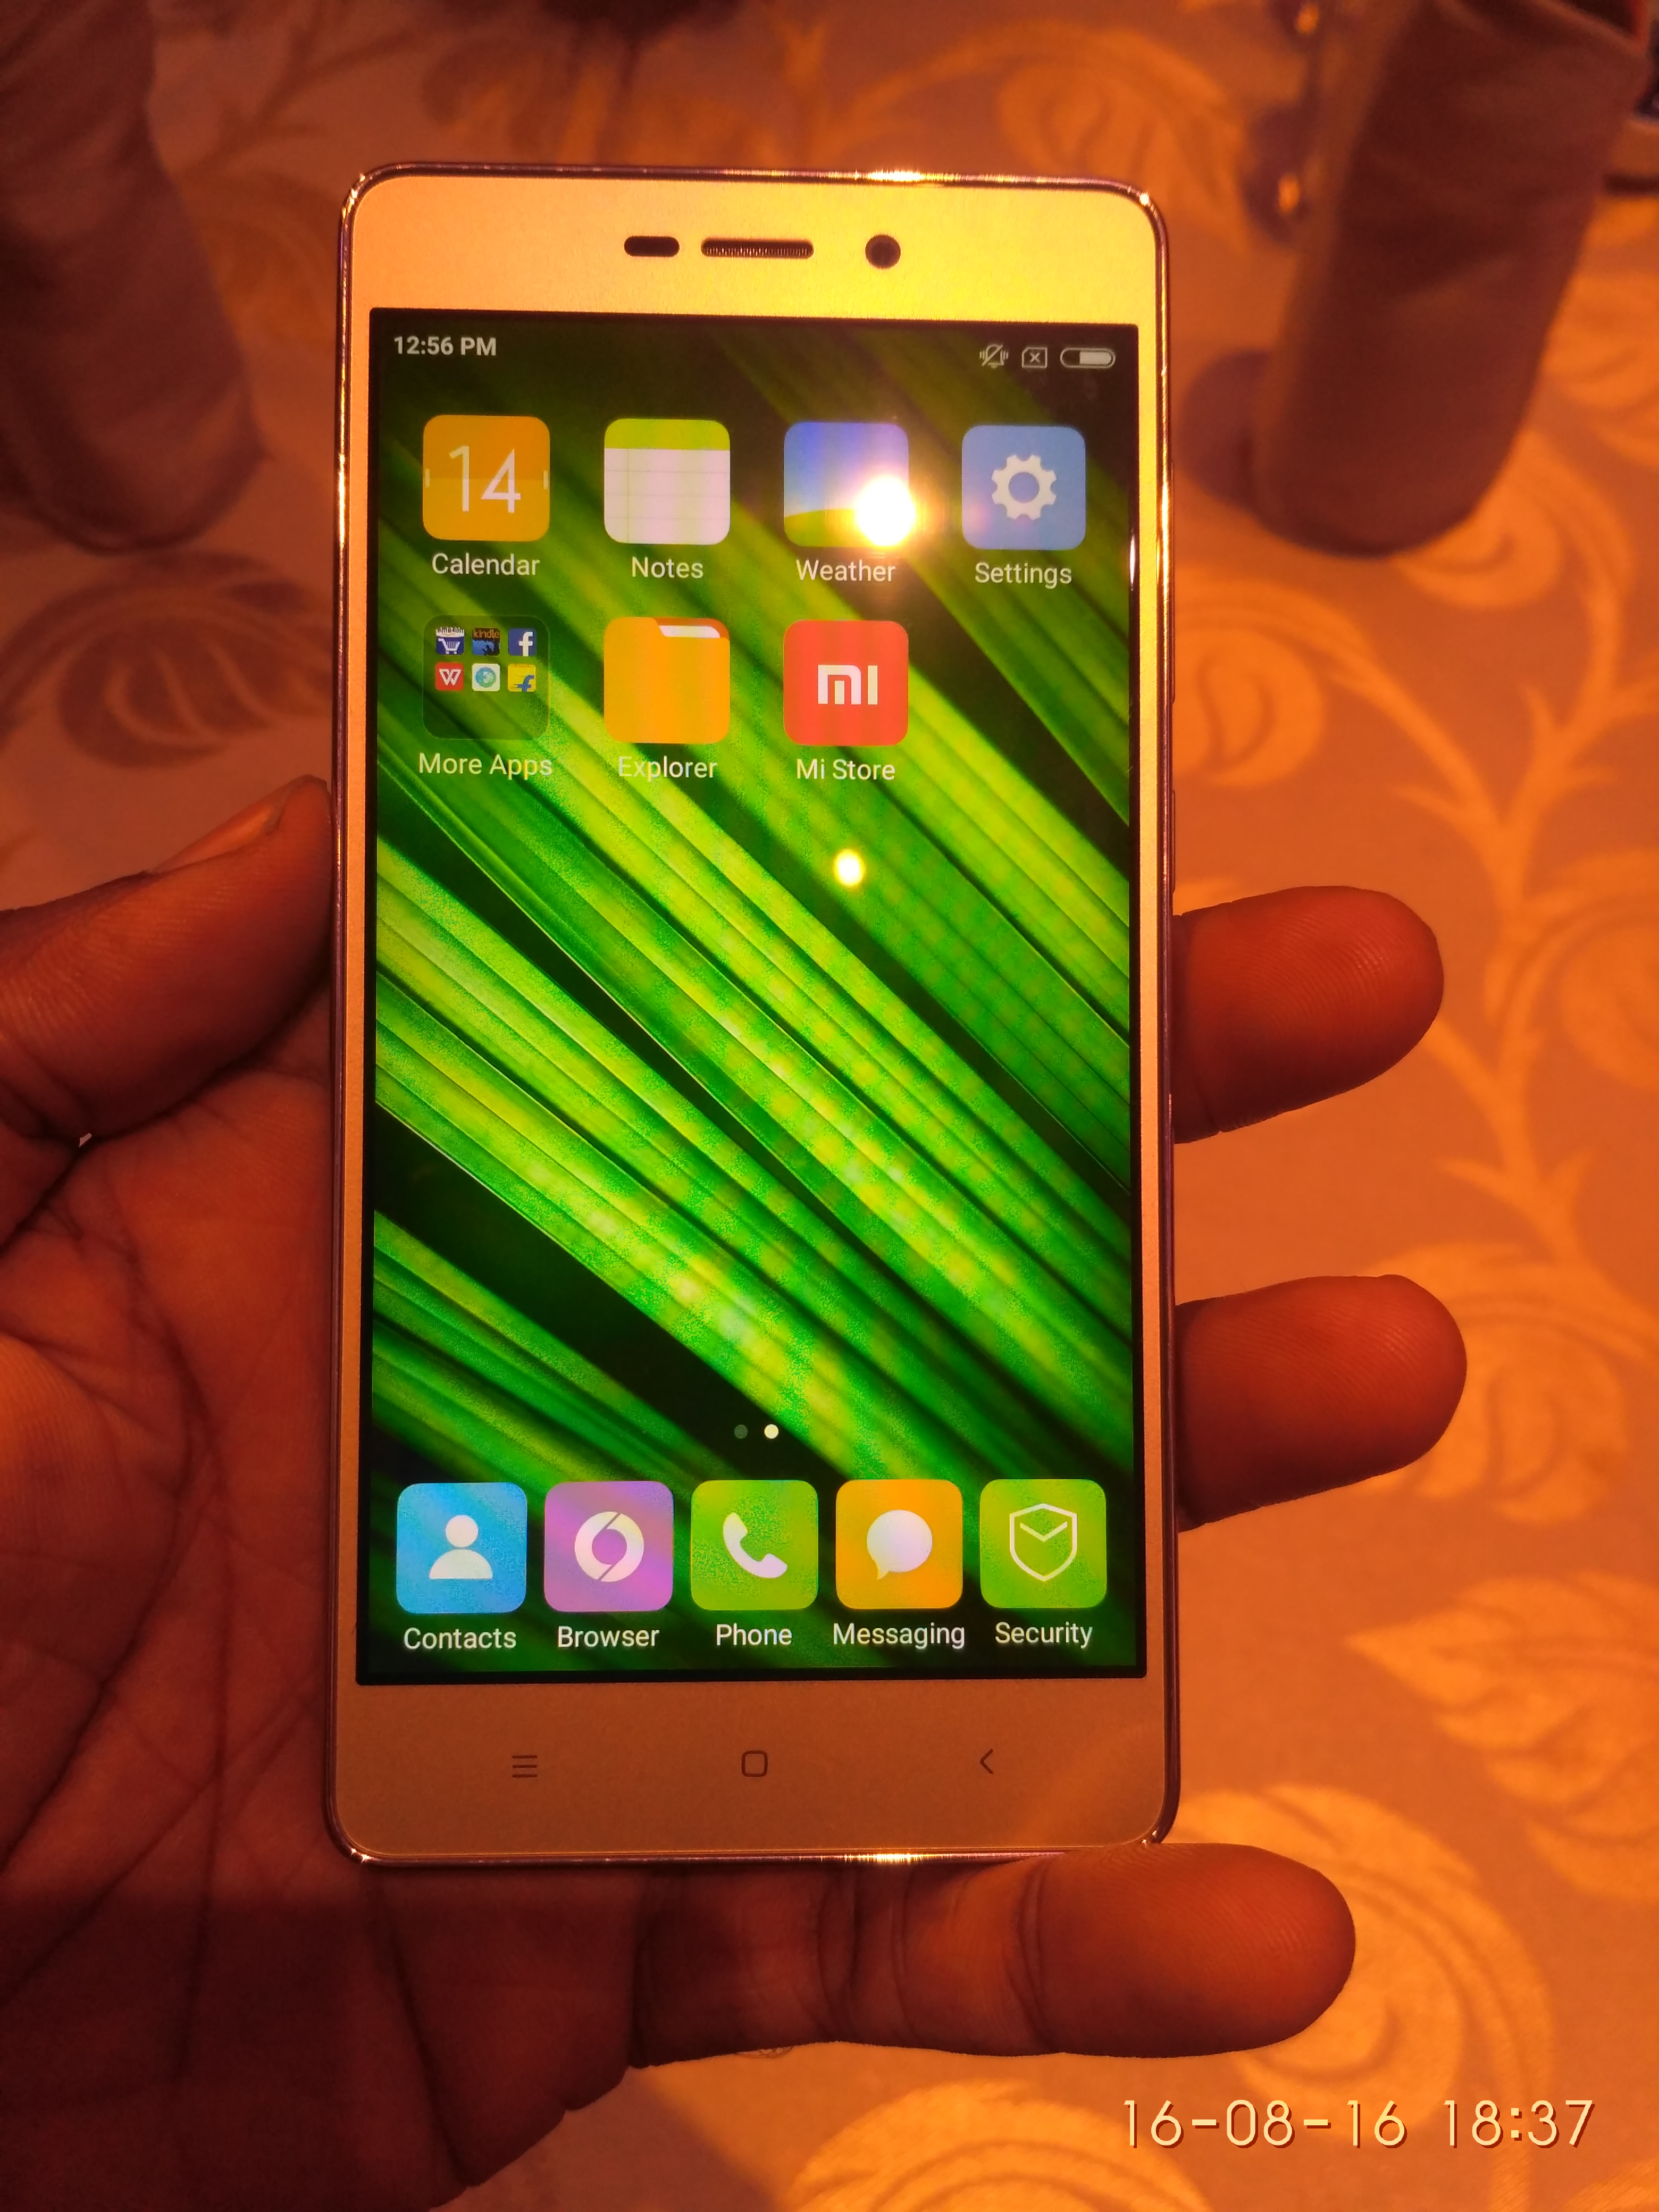 Power At Last]+Incredibly Powerful Redmi 3s Prime,My Hands